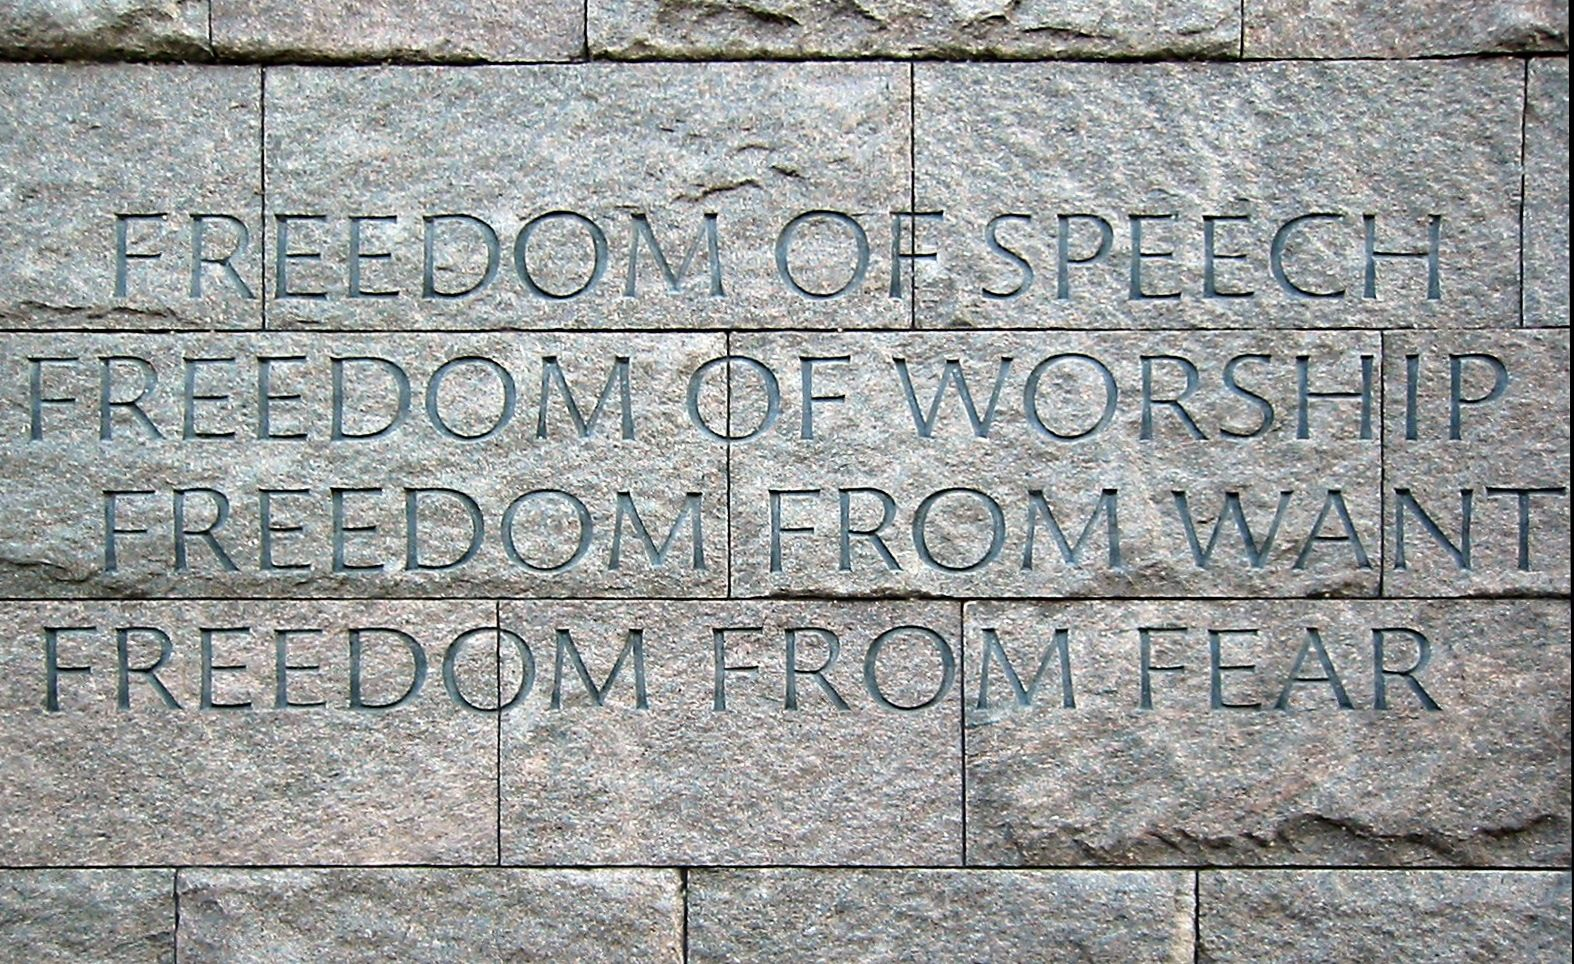 De Four Freedoms, zoals vemeld op het Franklin Delano Roosevelt Memorial in Washington.